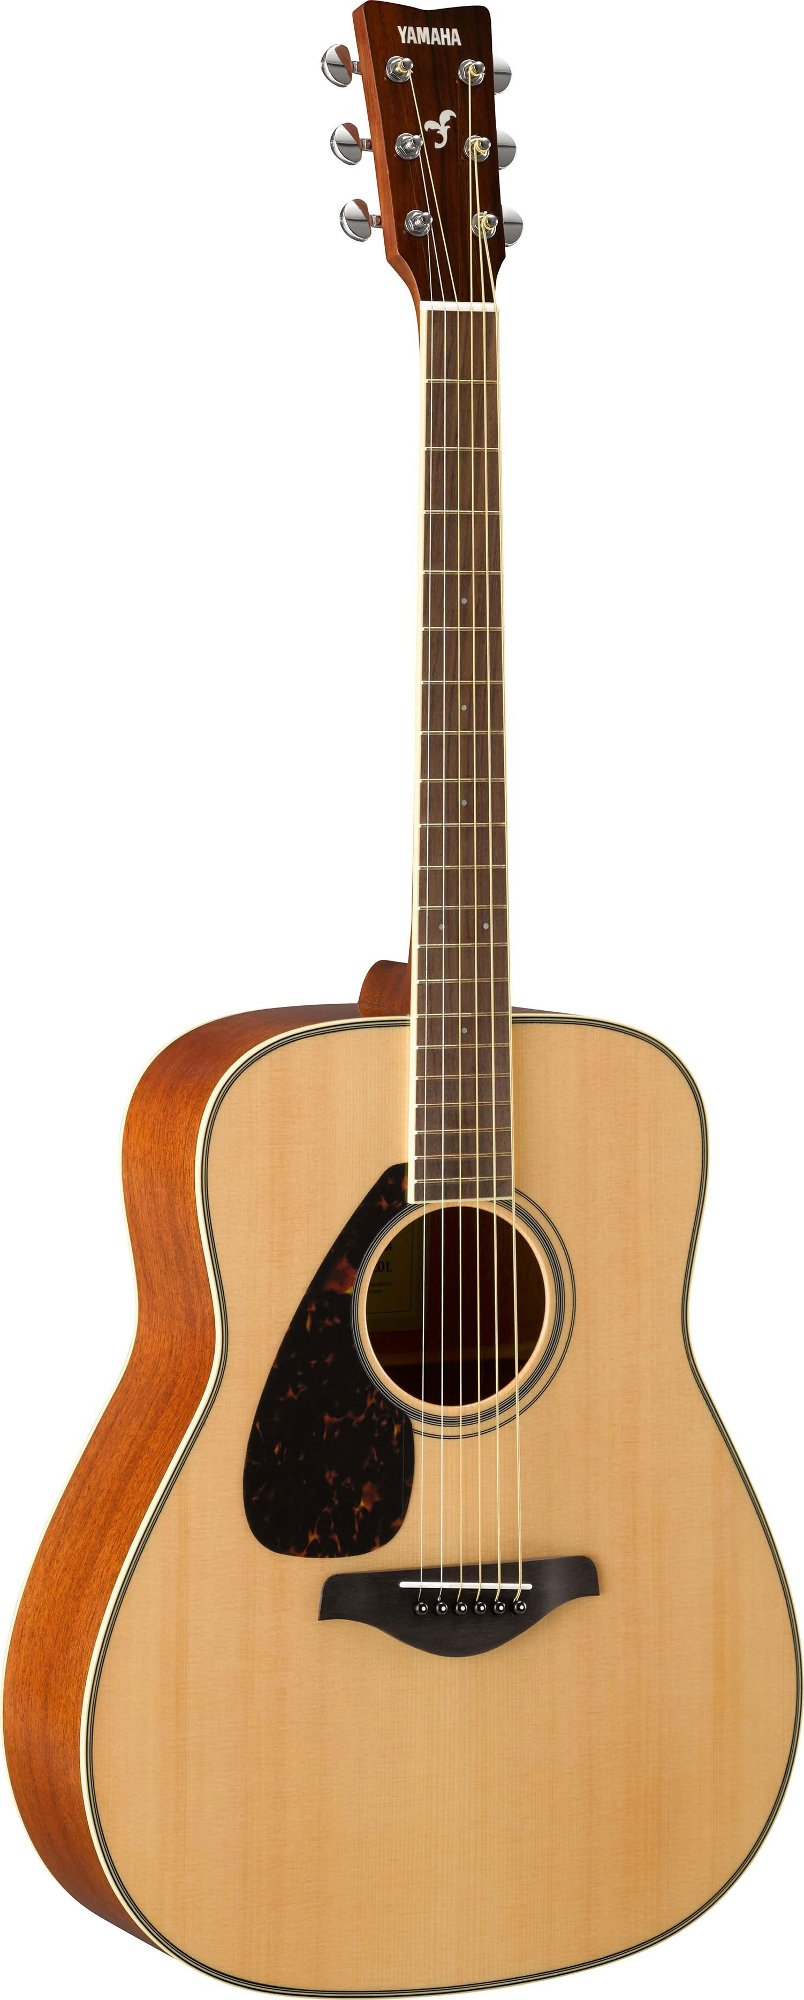 Left-Handed Acoustic Guitar with Solid Spruce Top, Mahogany Back & Sides